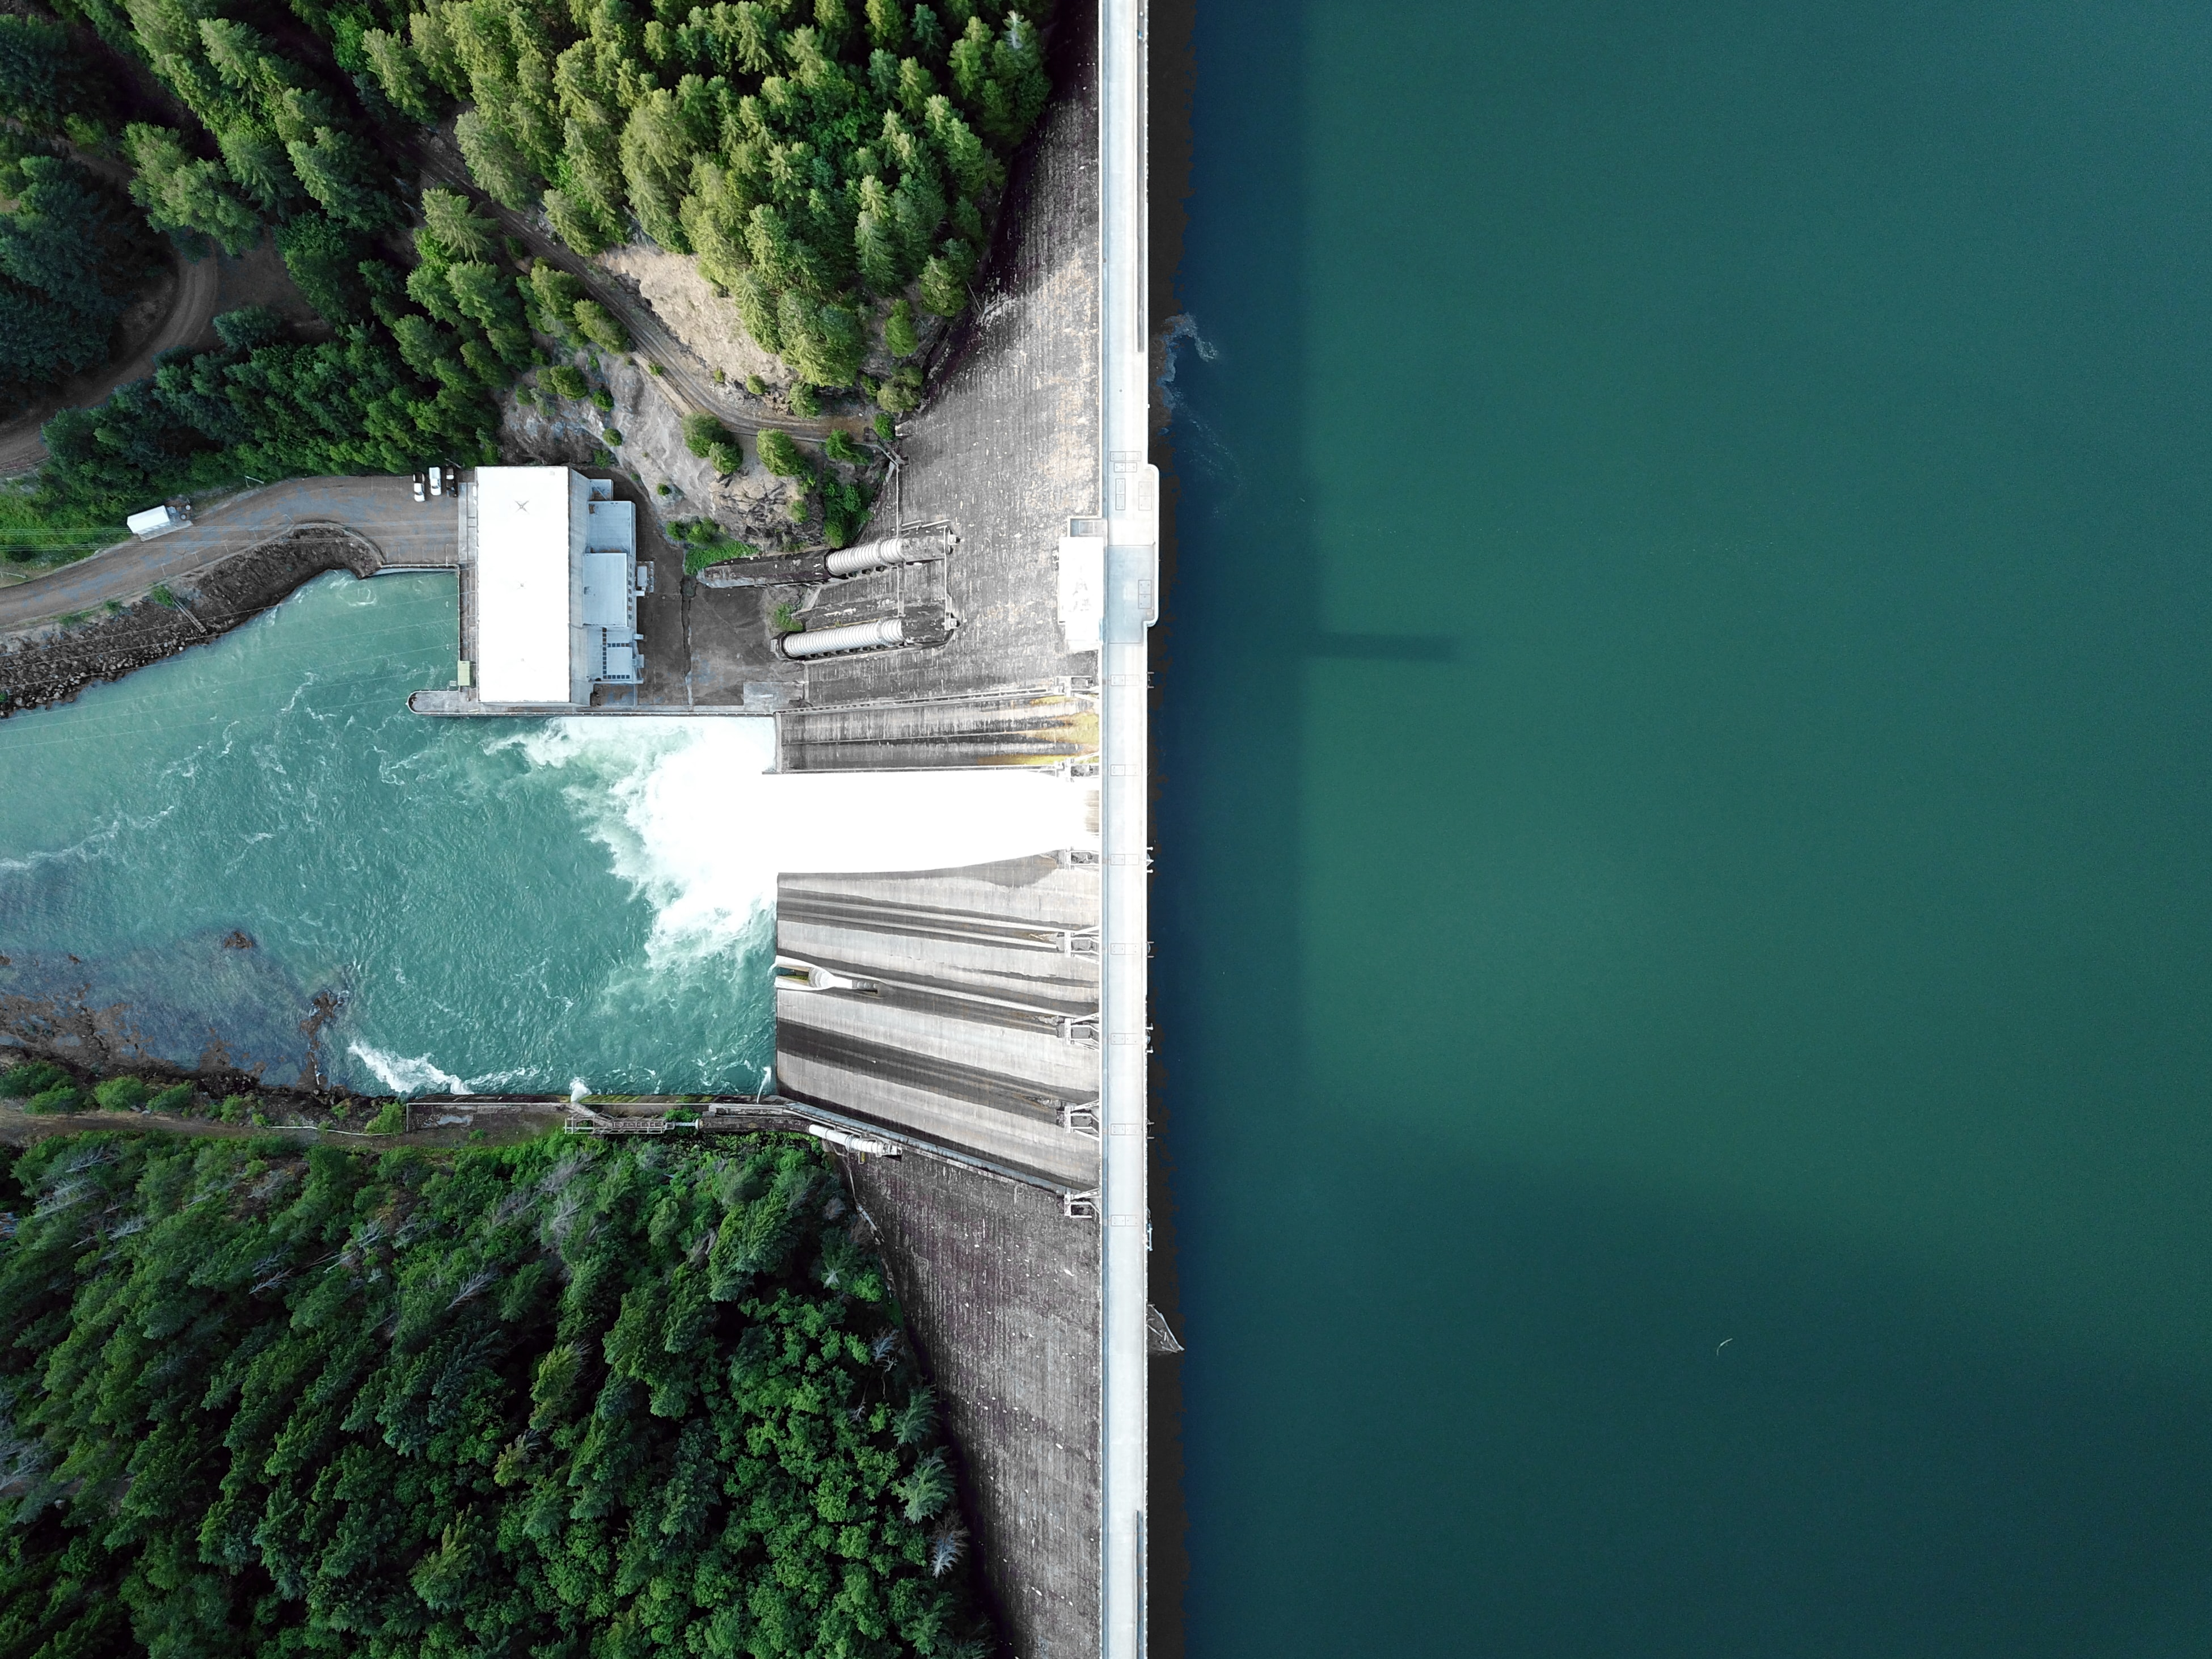 water rushing through hydroelectric plant gates